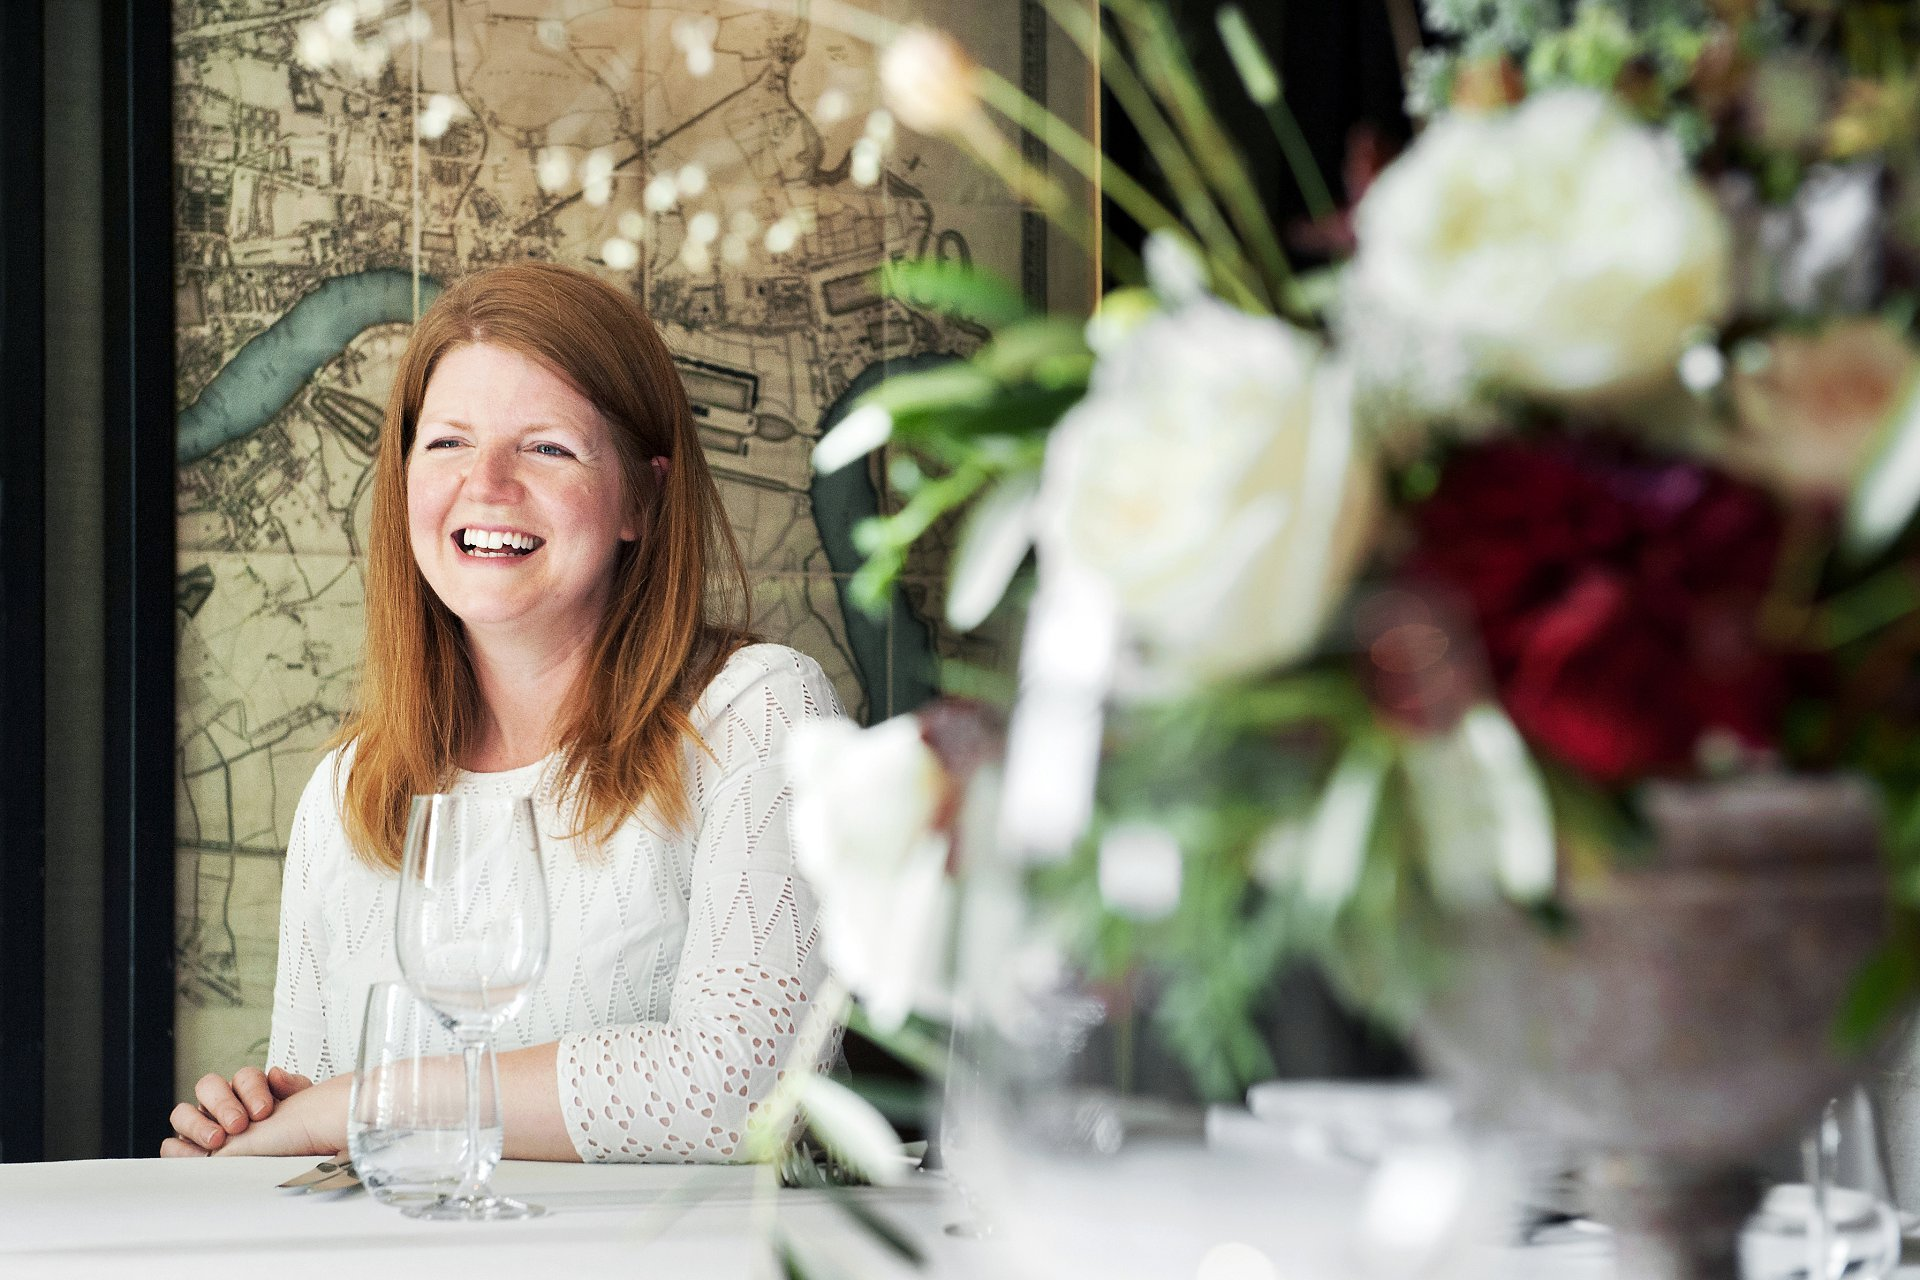 London Florist Bloomologie - Blackheath florist Ali Billenness photographed by London register office specialiat photographer Emma Duggan. Alison supplies contract flowers and bespoke floral designs for weddings, anniversaries, parties and events throughout London